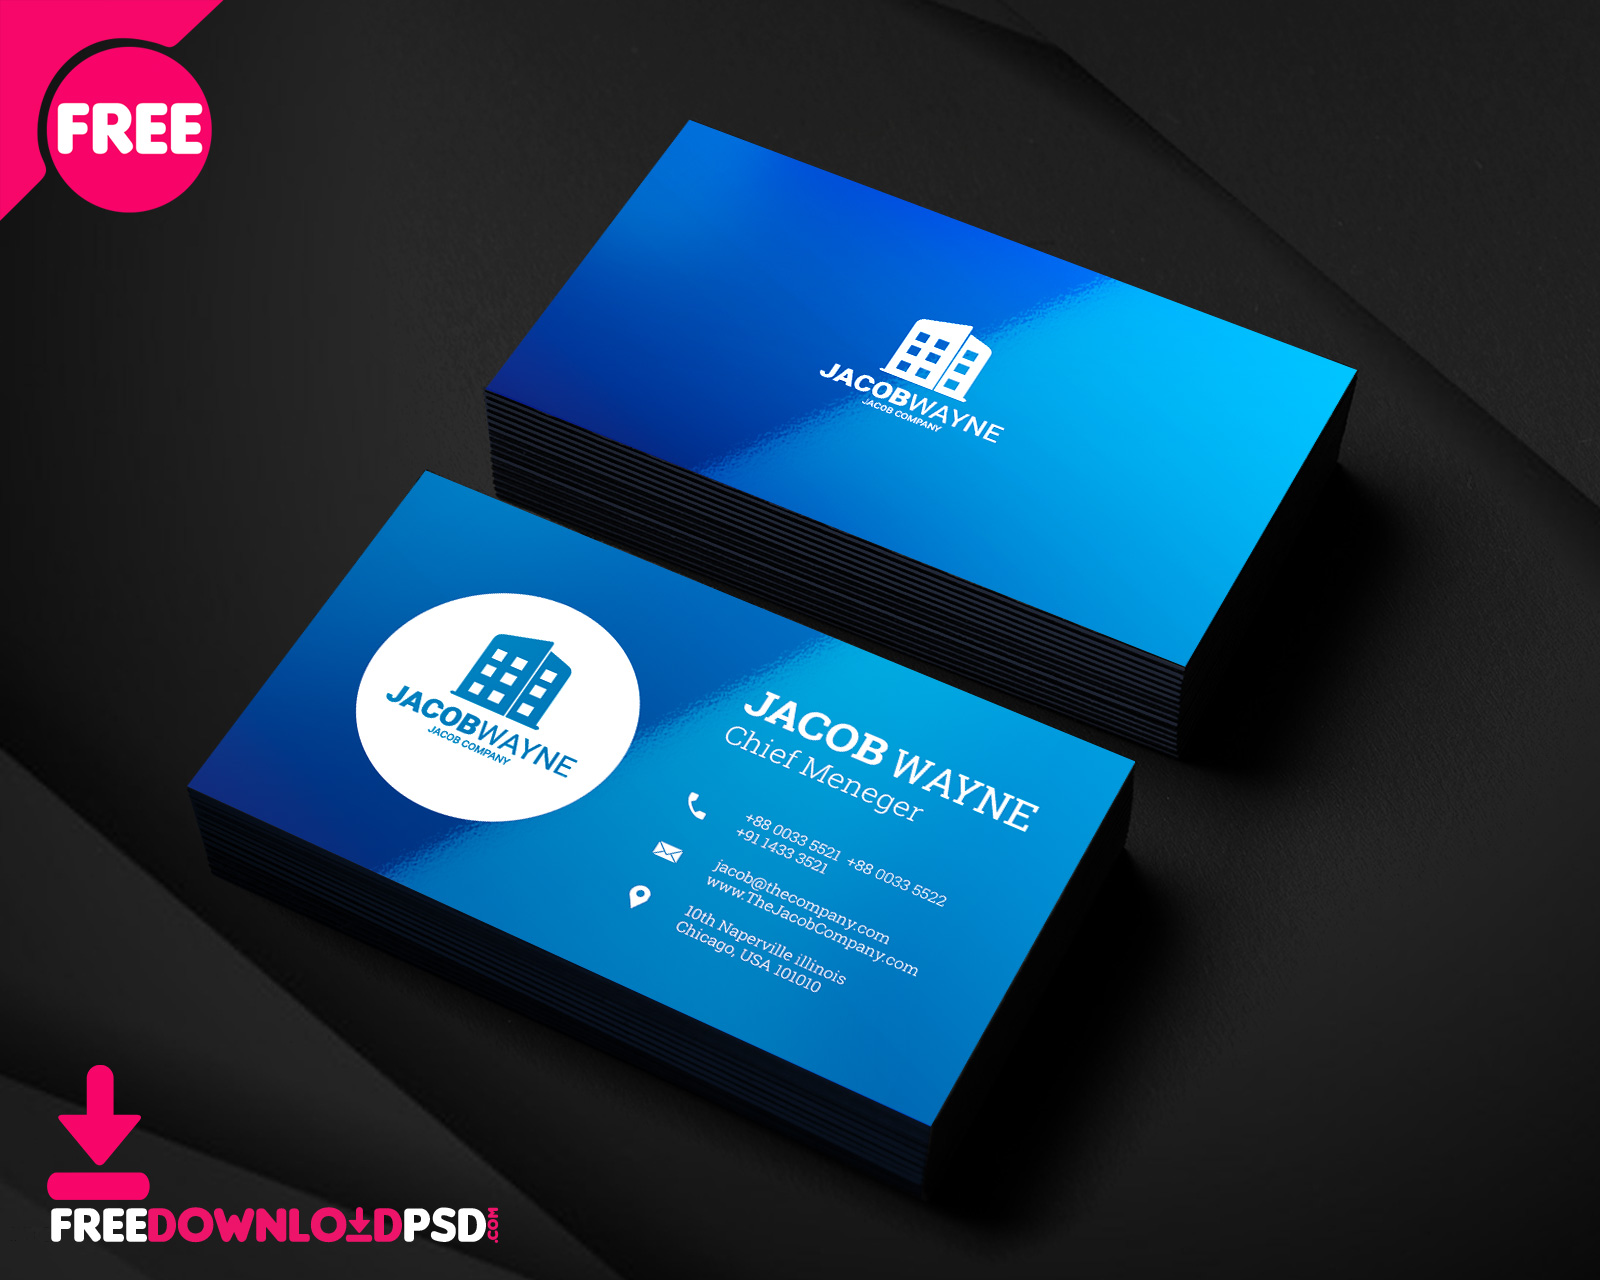 Real estate business card psd freedownloadpsd real estate business card psd free real estate business card templates for word fbccfo Images